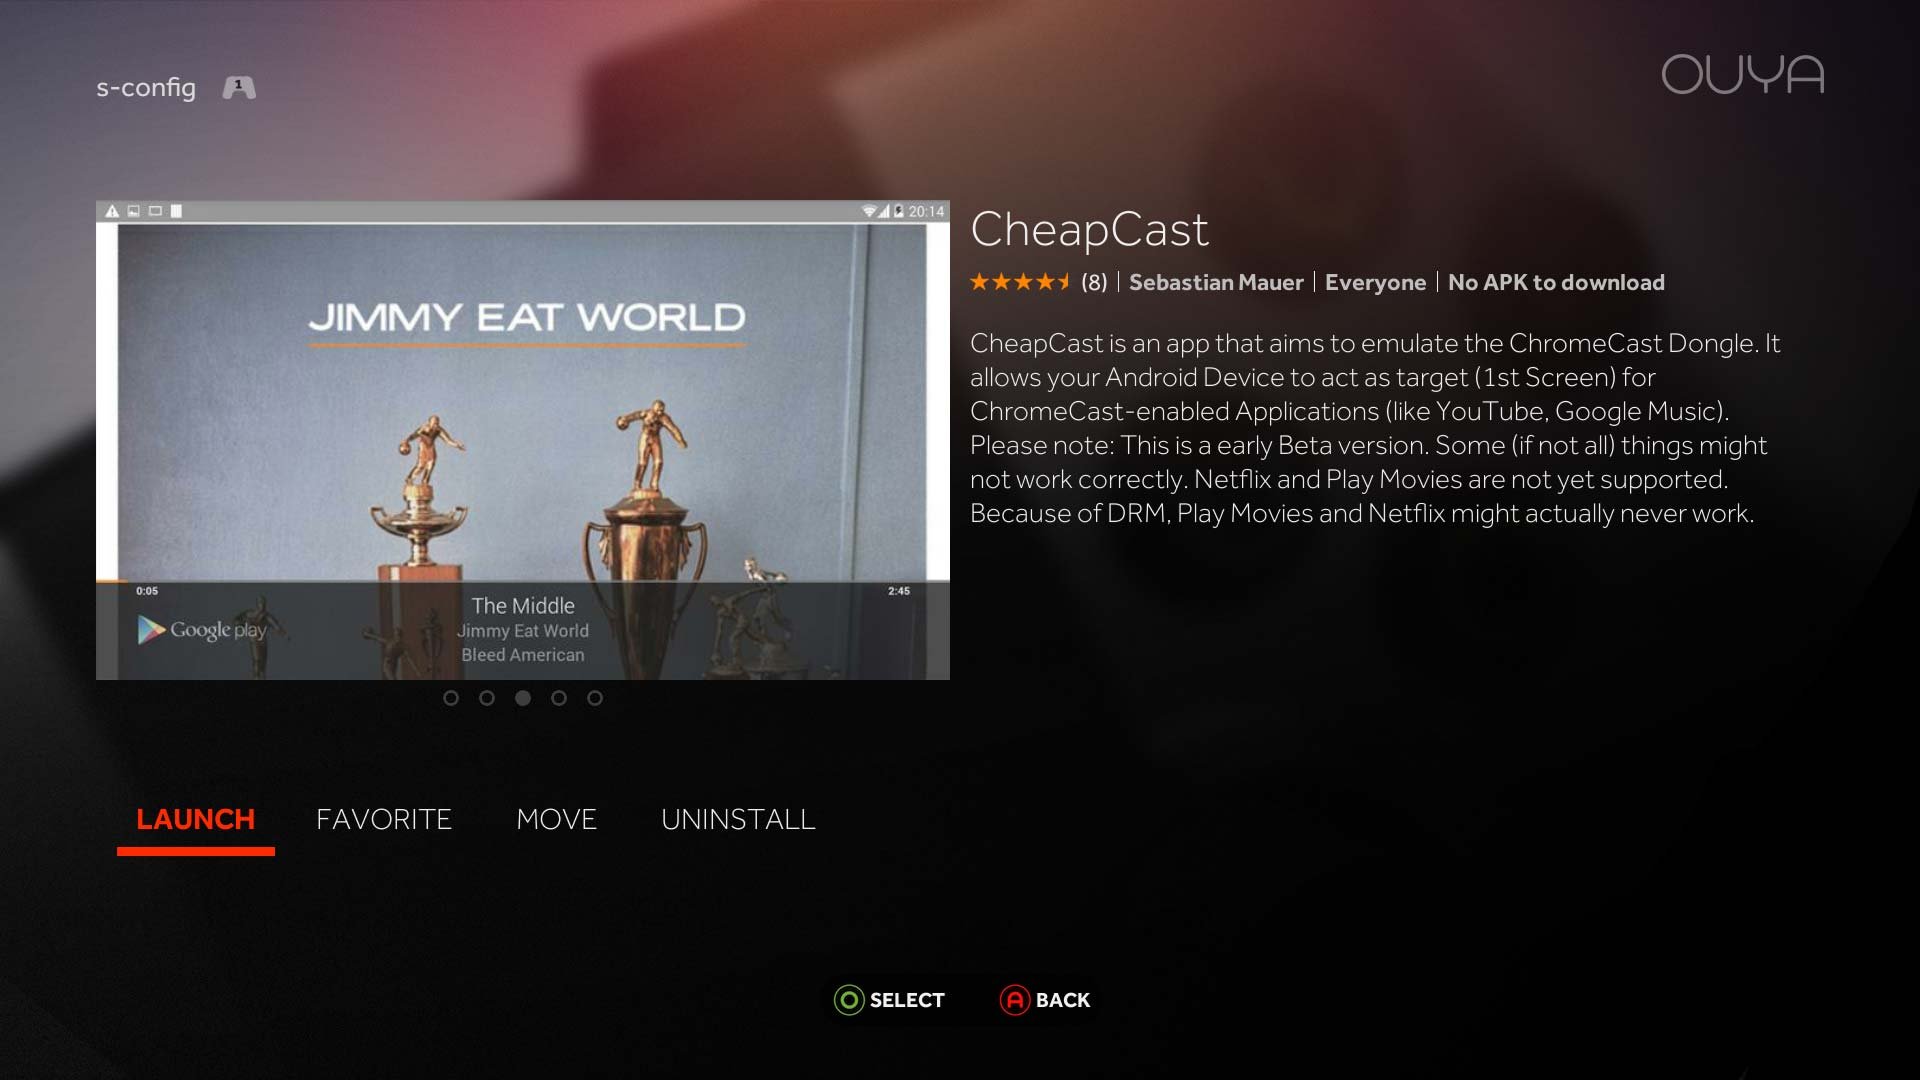 CheapCast on Ouya